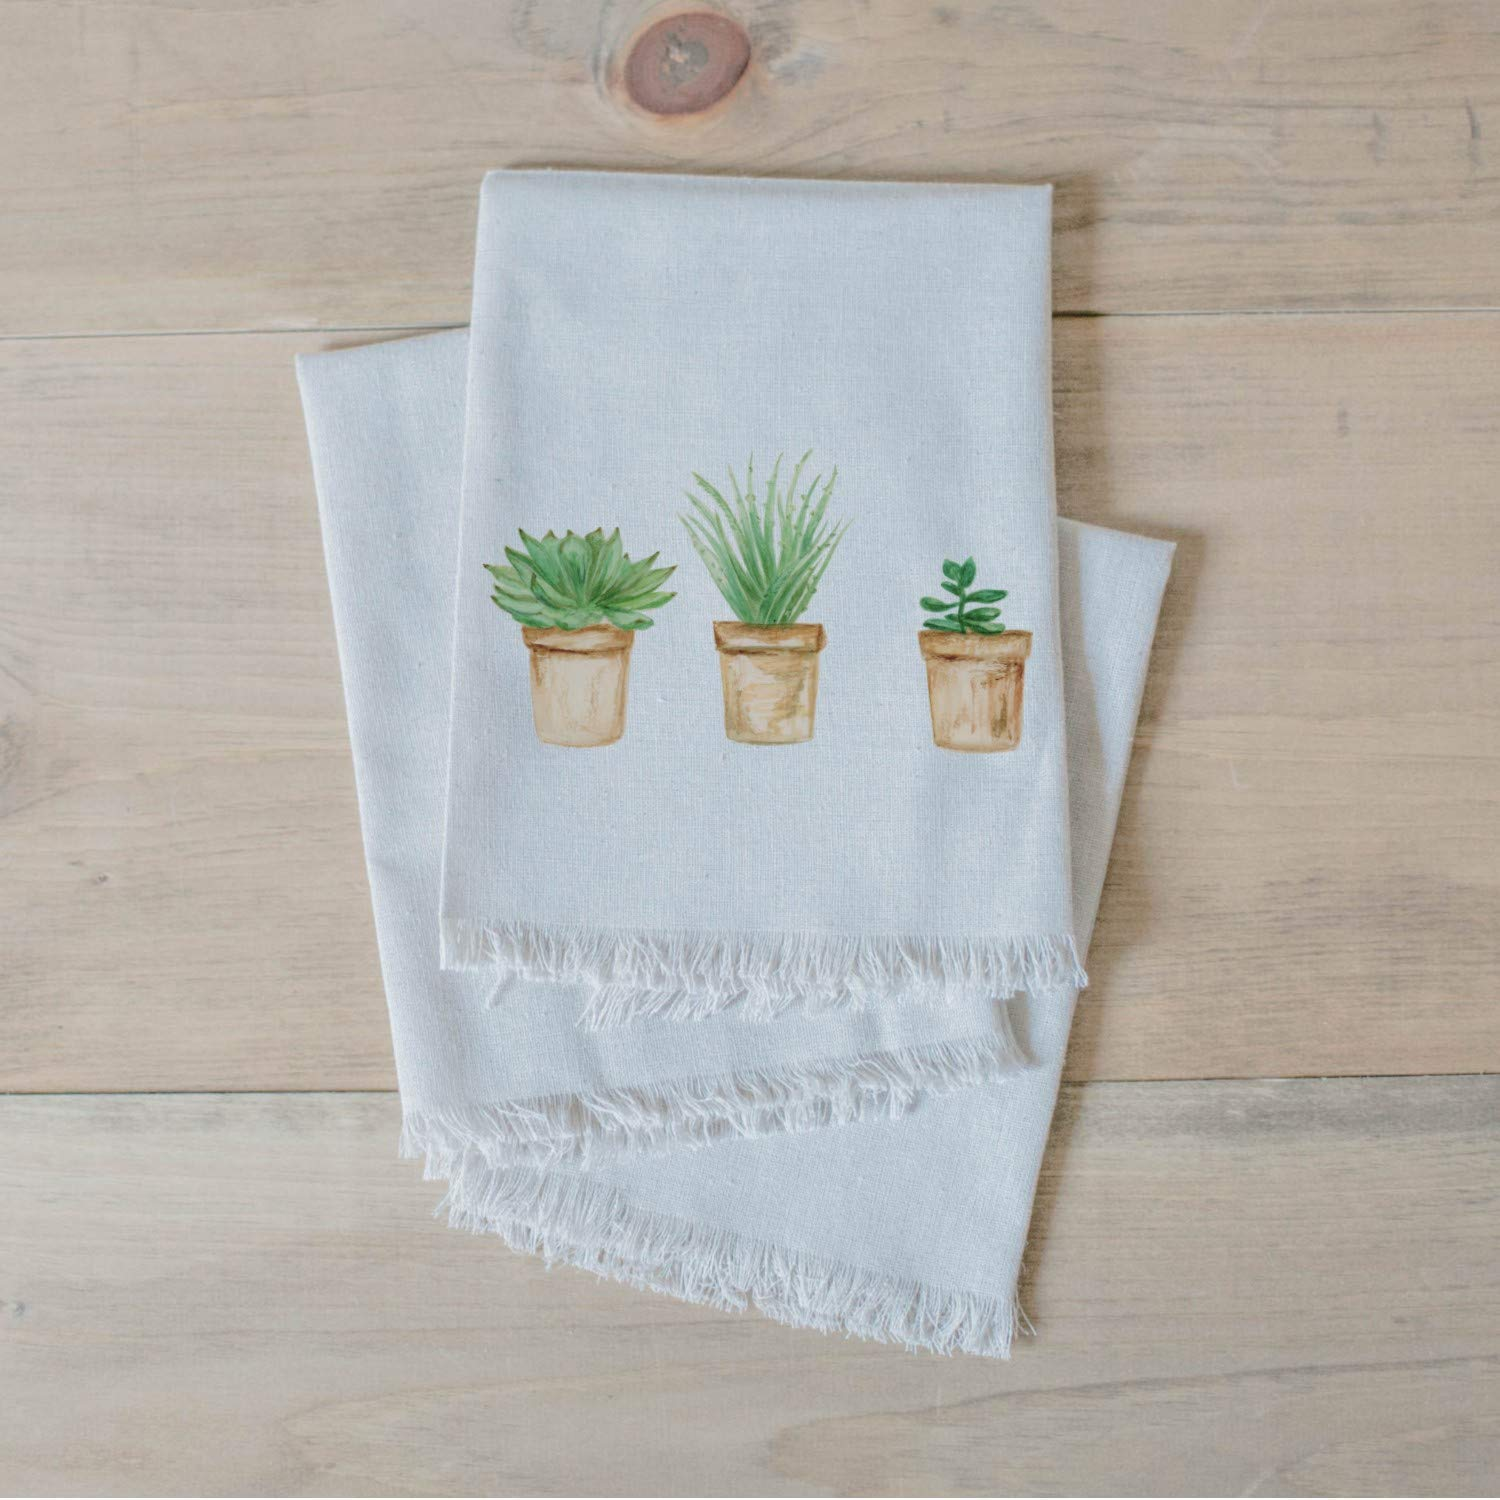 dinner party Succulent Pots Watercolor table setting place setting Napkin Set home decor tableware housewarming gift home decor Handmade in the USA